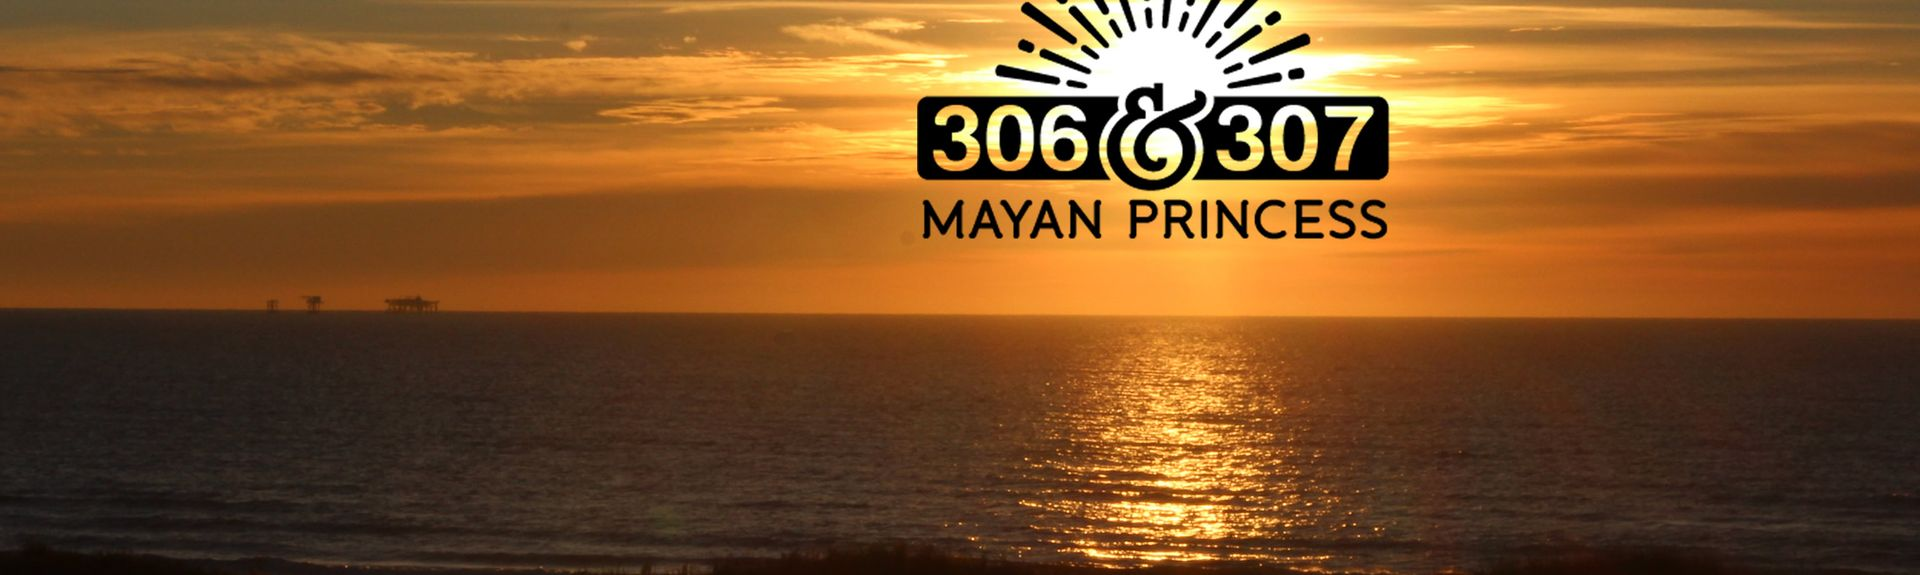 Mayan Princess (Port Aransas, Texas, United States)